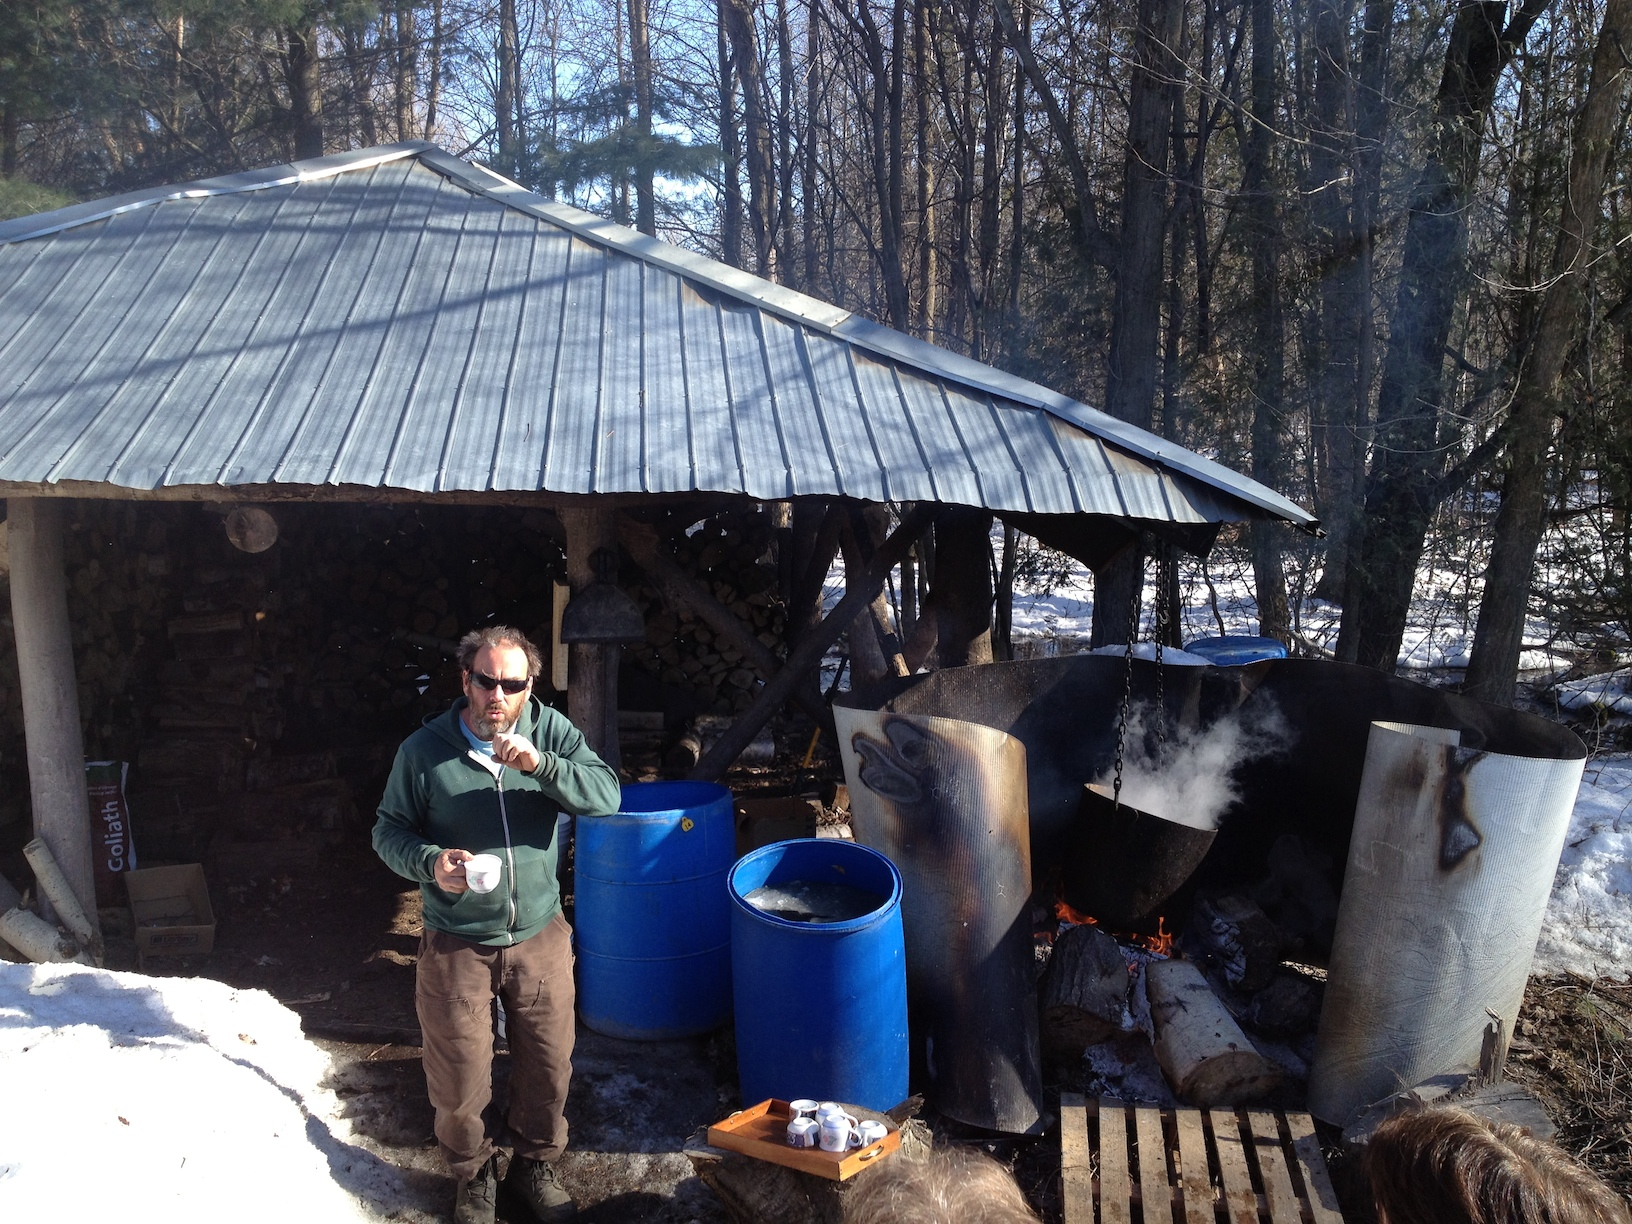 Farm owner Ian Walker explaining the process of Maple syrup production beside his cauldron of boiling sap.